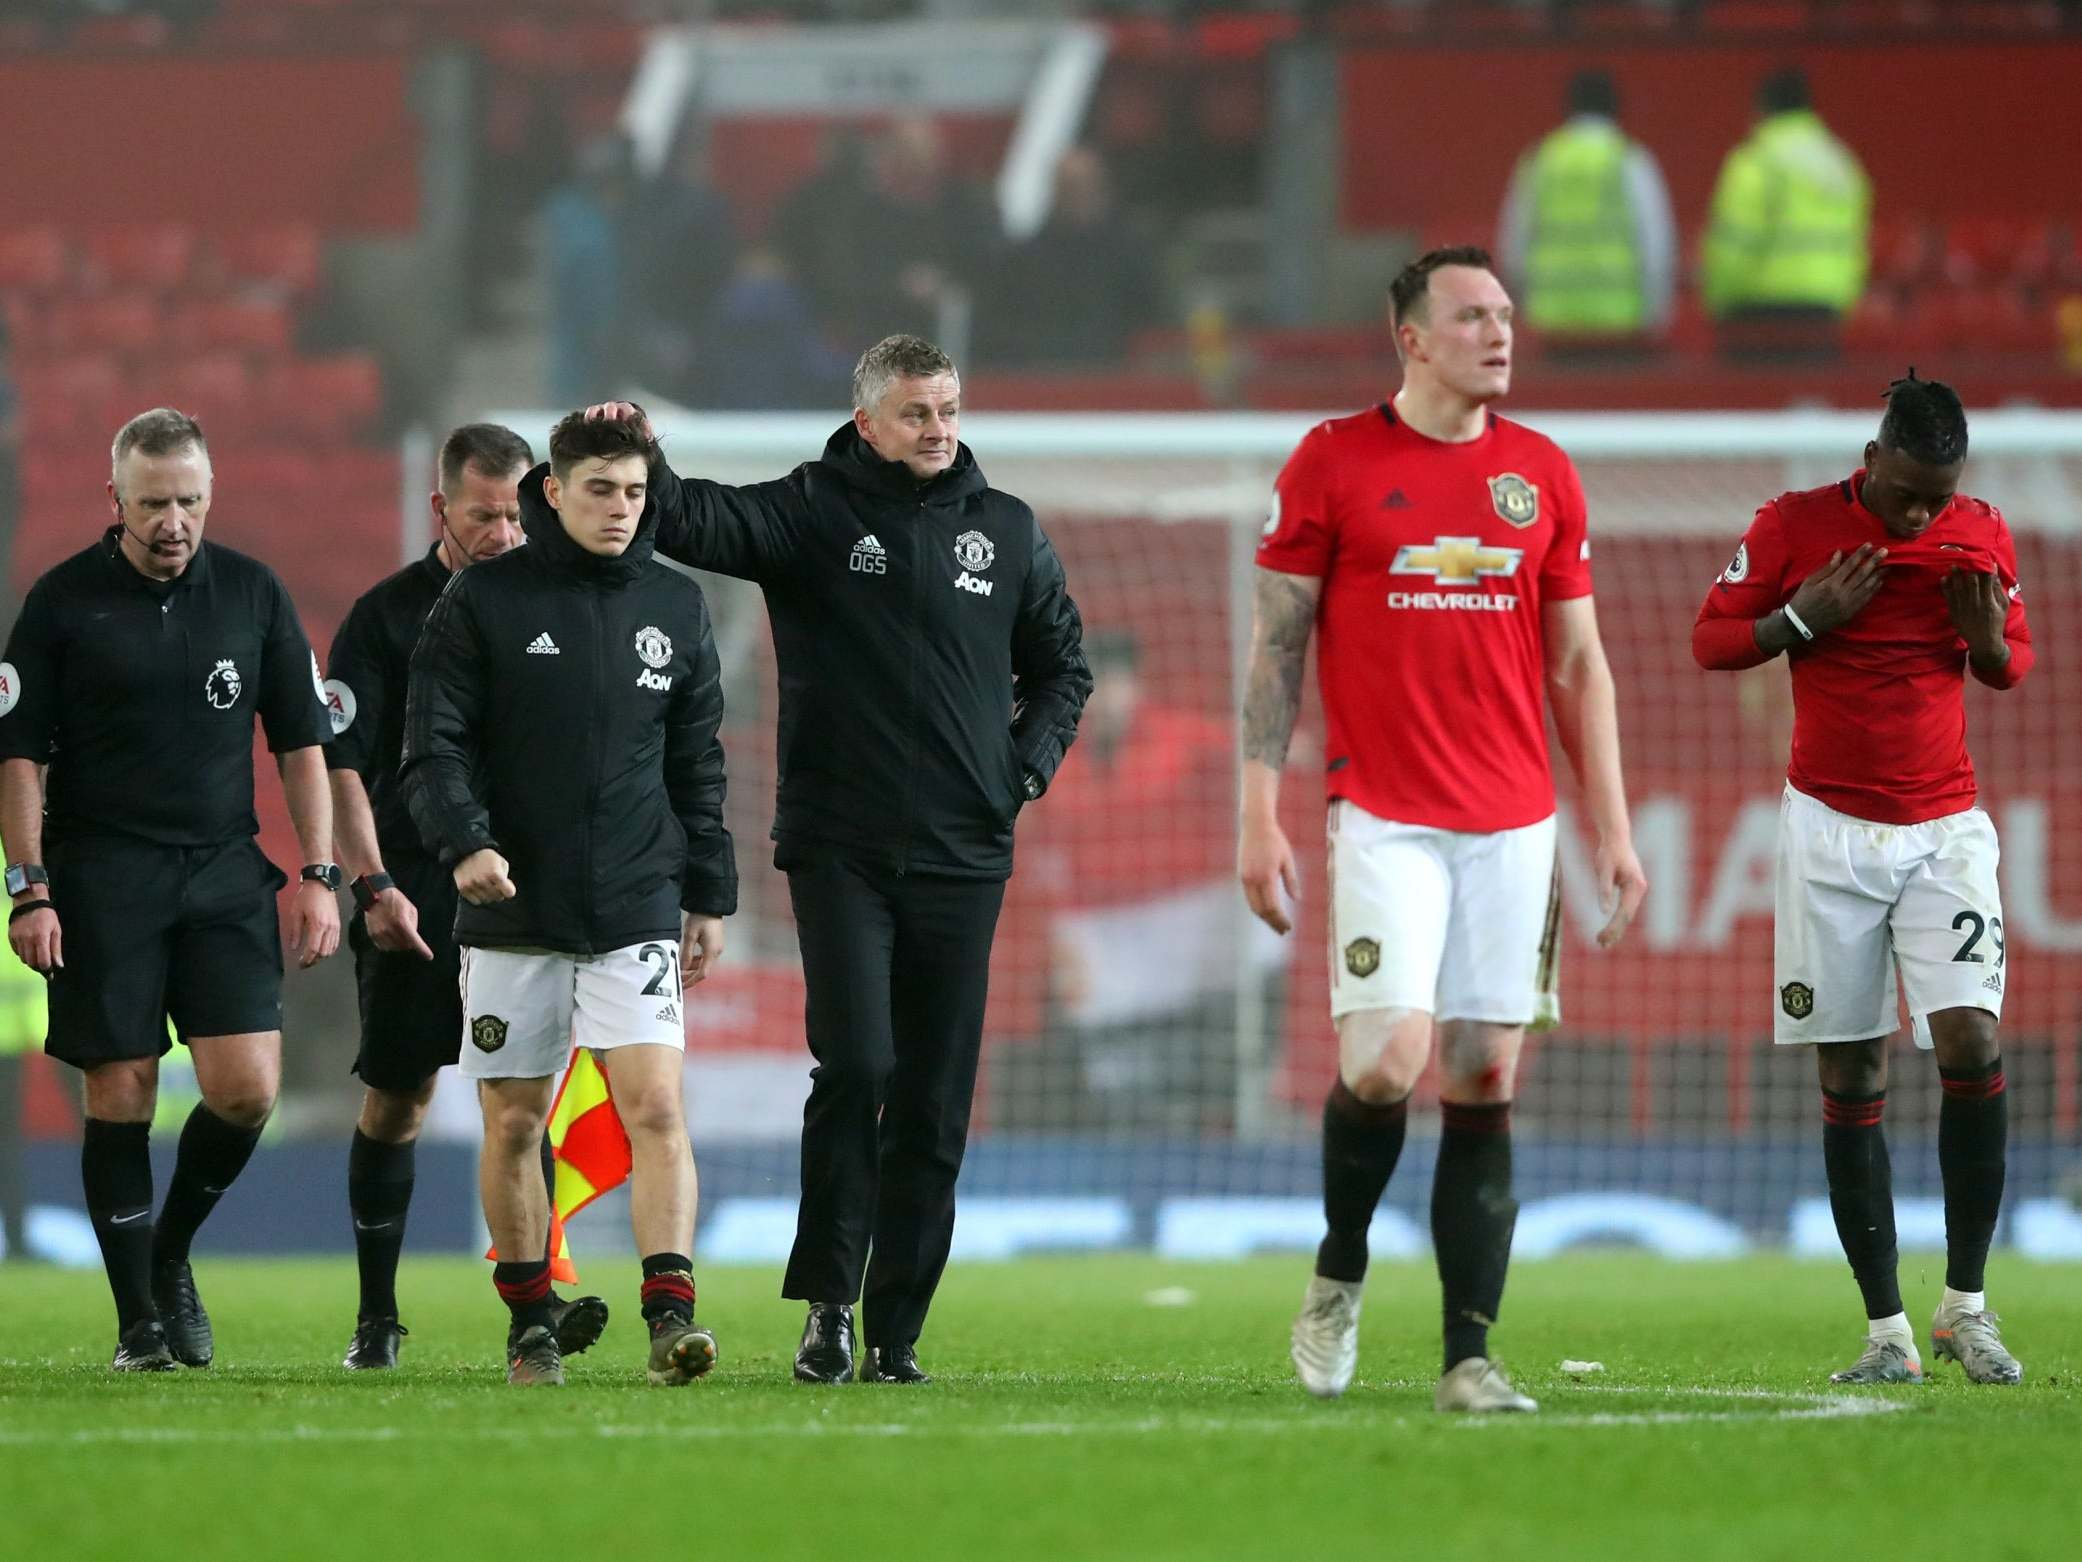 Ole Gunnar Solskjaer admits feeling 'disillusioned' after Burnley loss